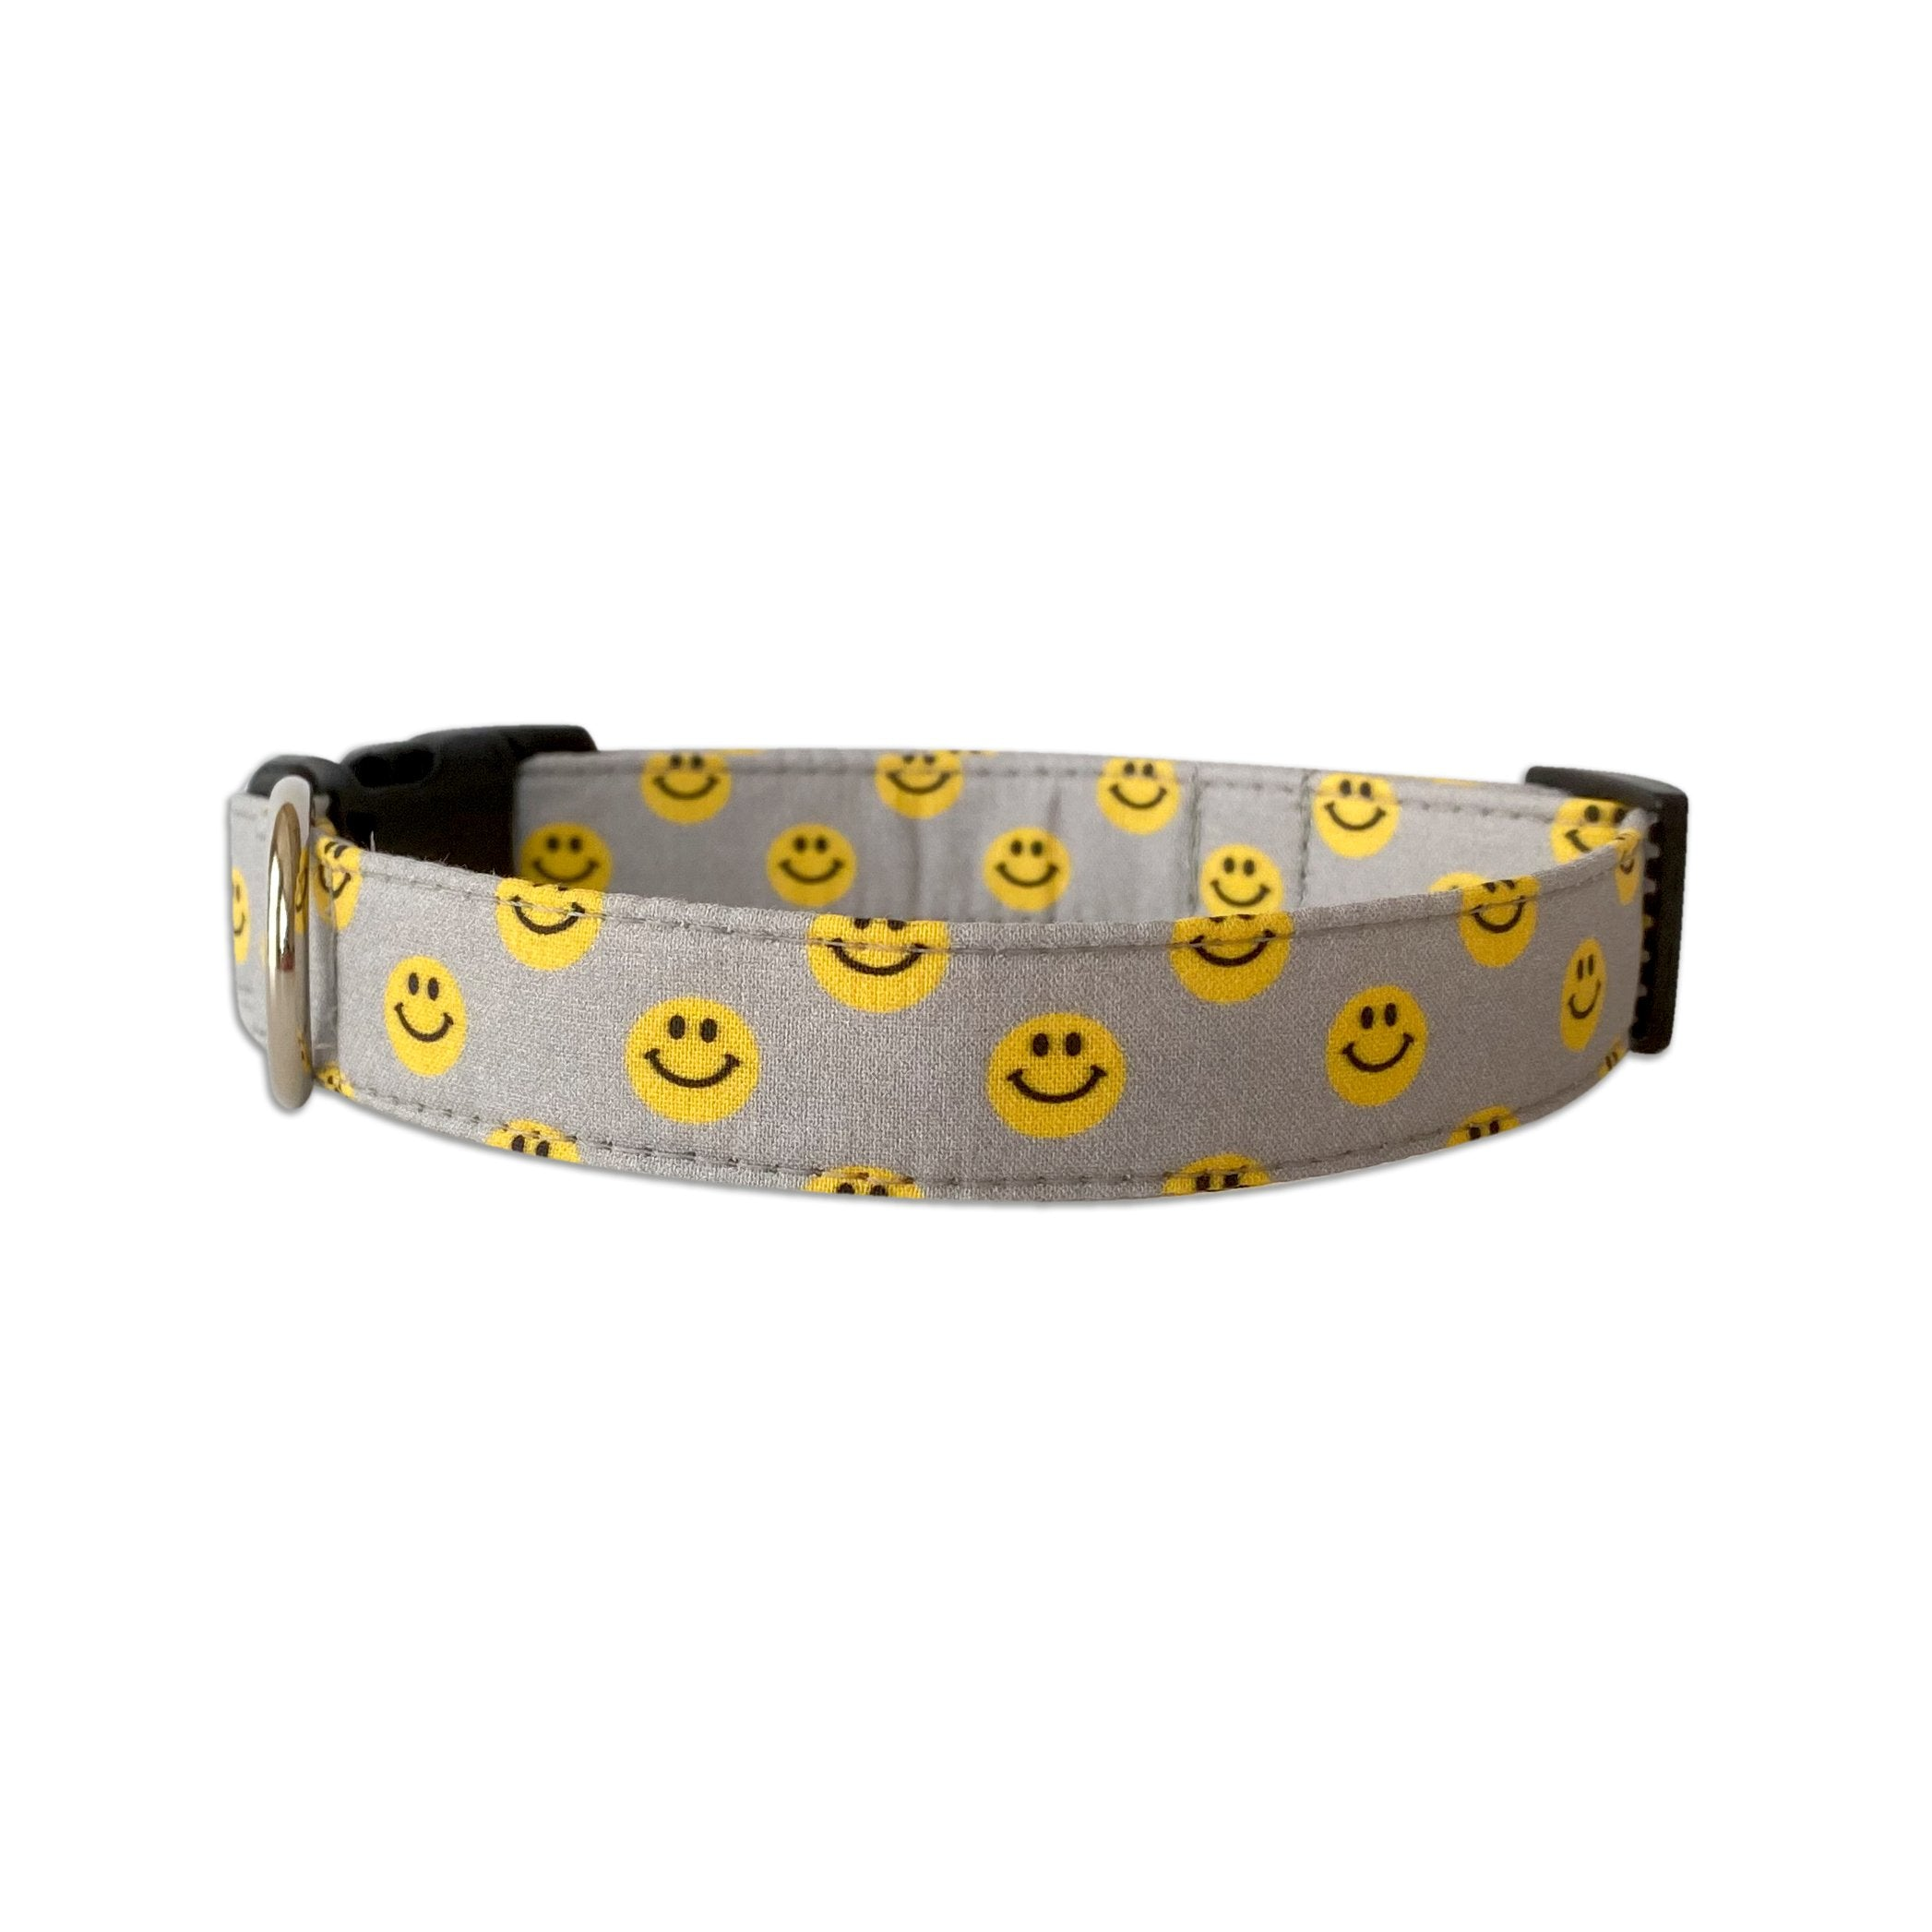 Don't Worry, Be Happy Dog Collar